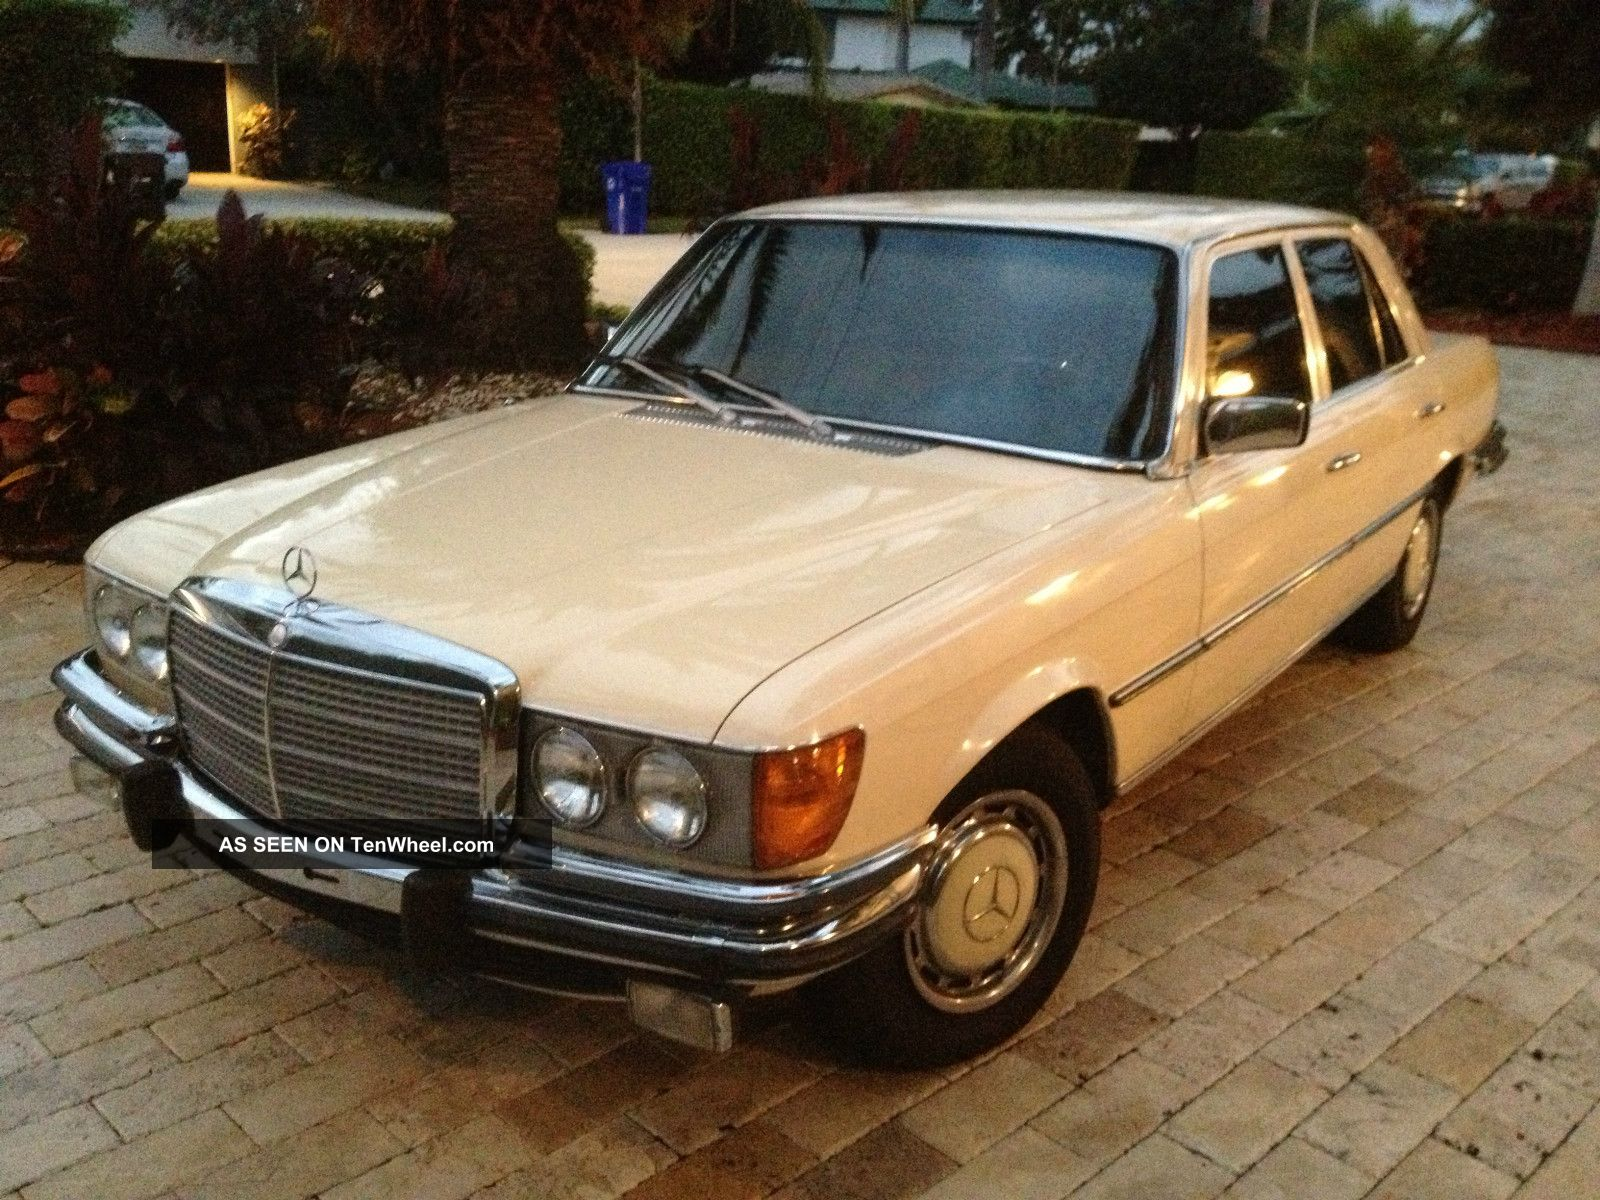 1973 Mercedes - Benz 450se Celebrity Owned,  Immaculate,  Pristine,  Nicest On Ebay 400-Series photo